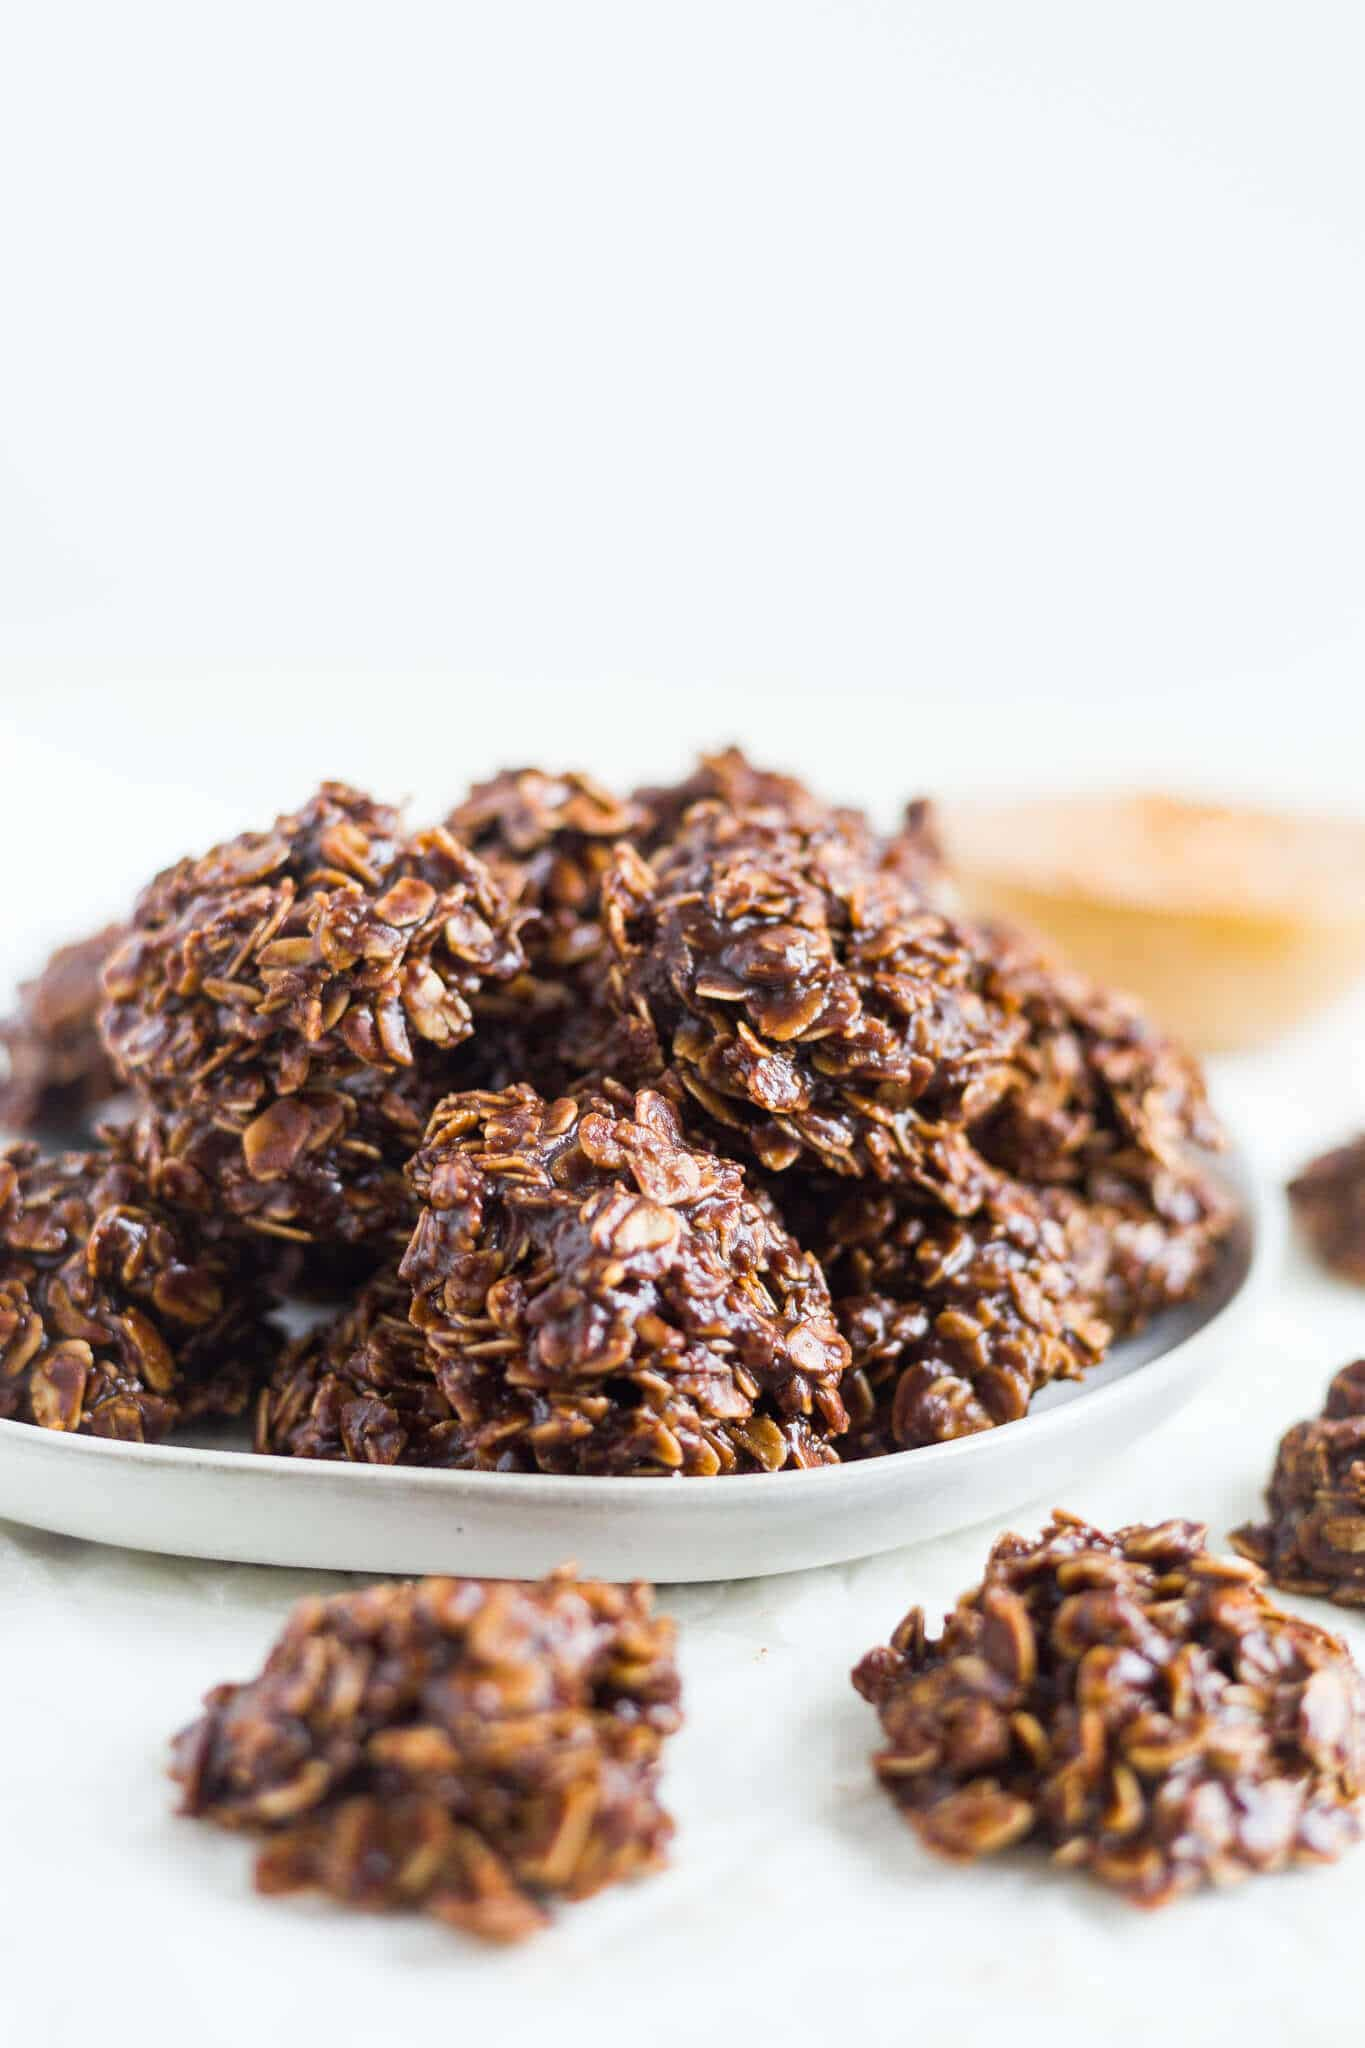 recipe for no bake chocolate oatmeal cookies